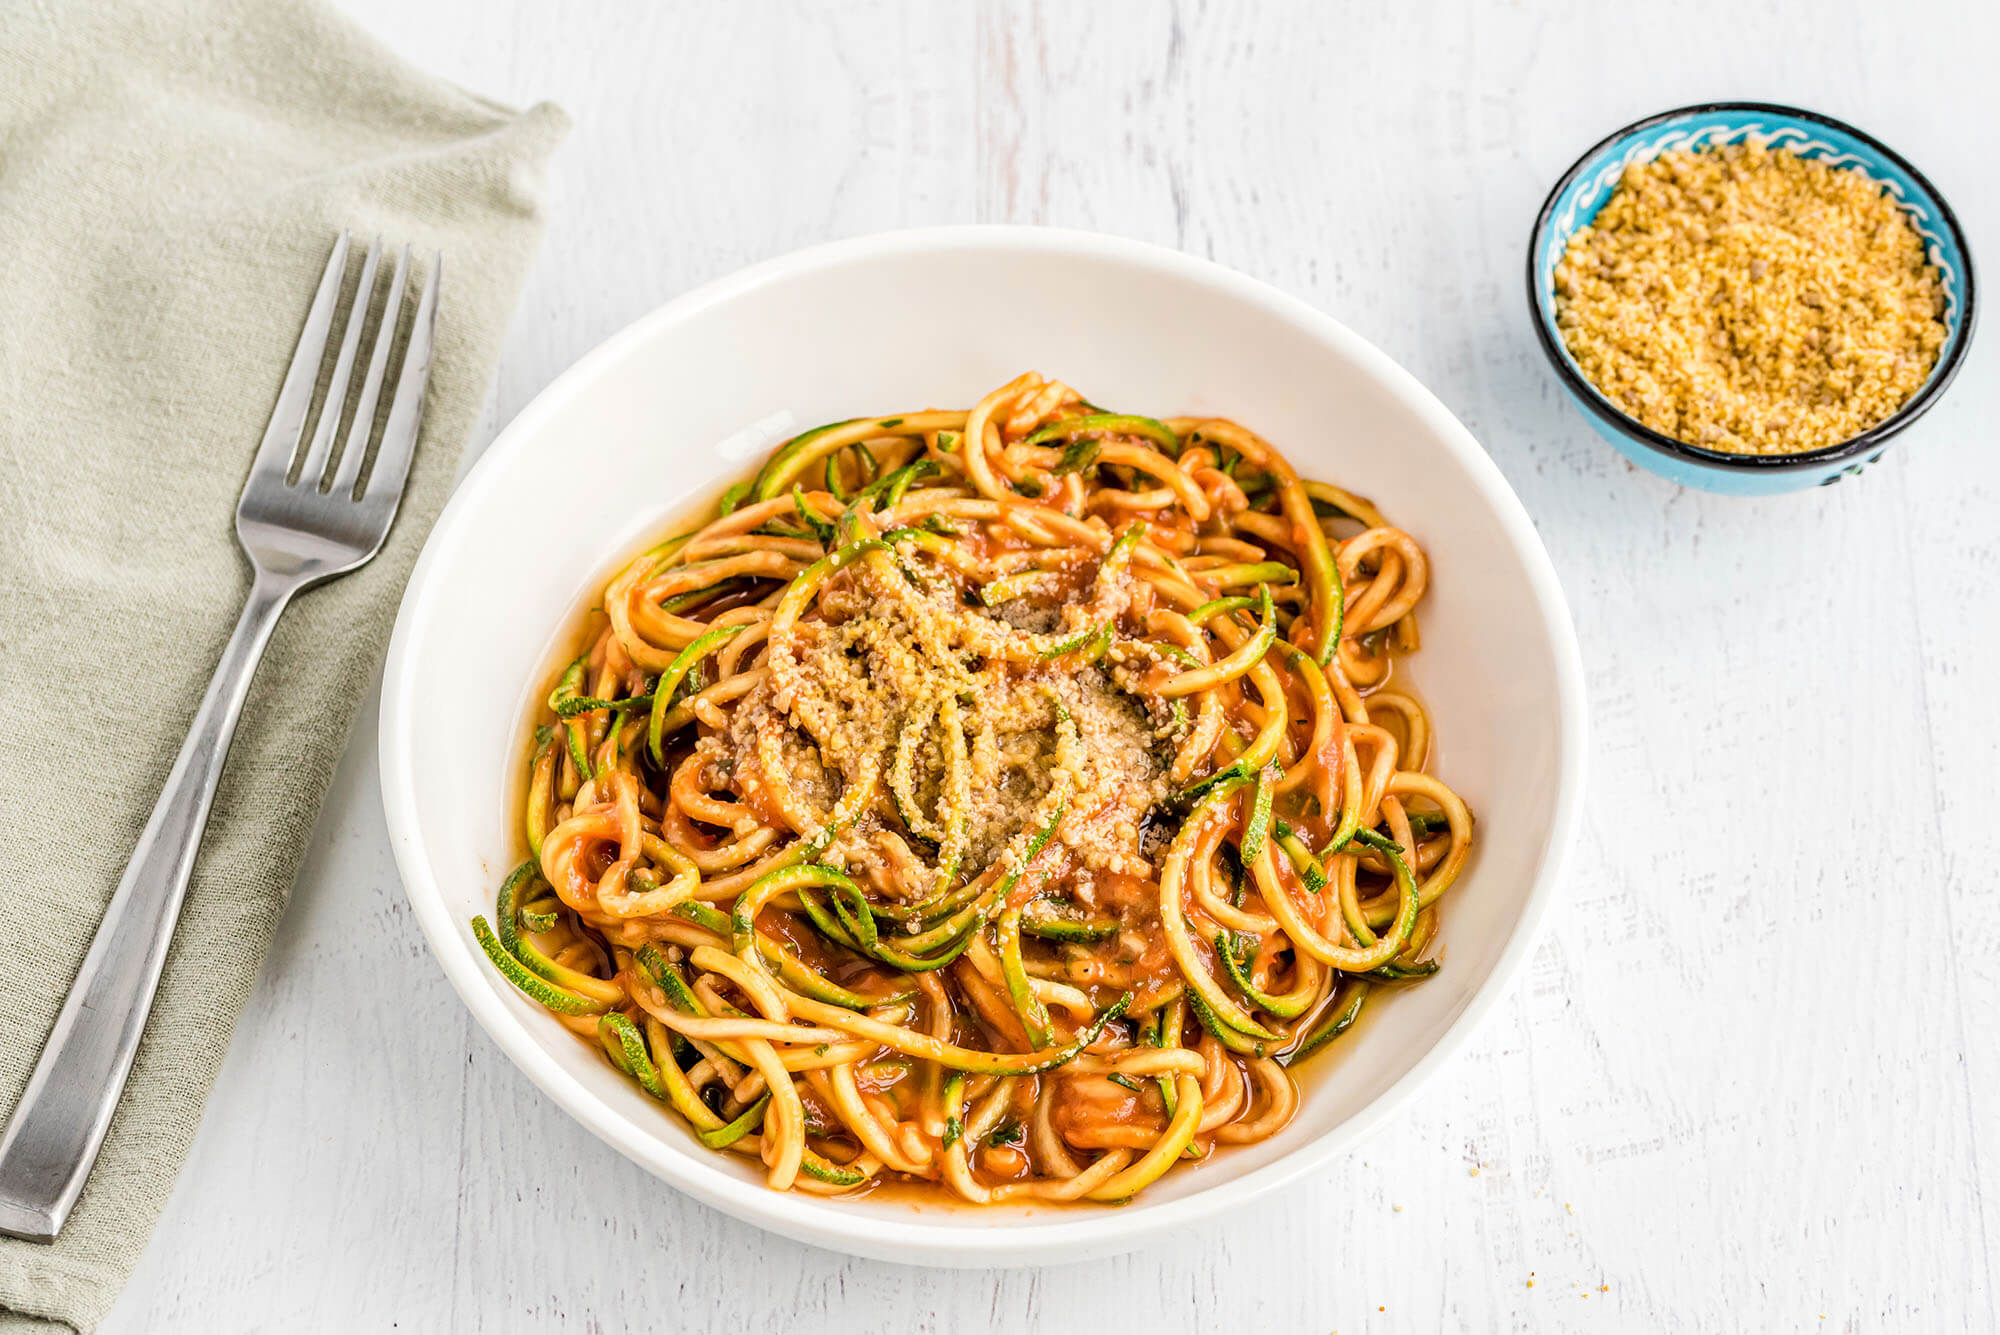 Zucchini Noodles with Raw Marinara Sauce